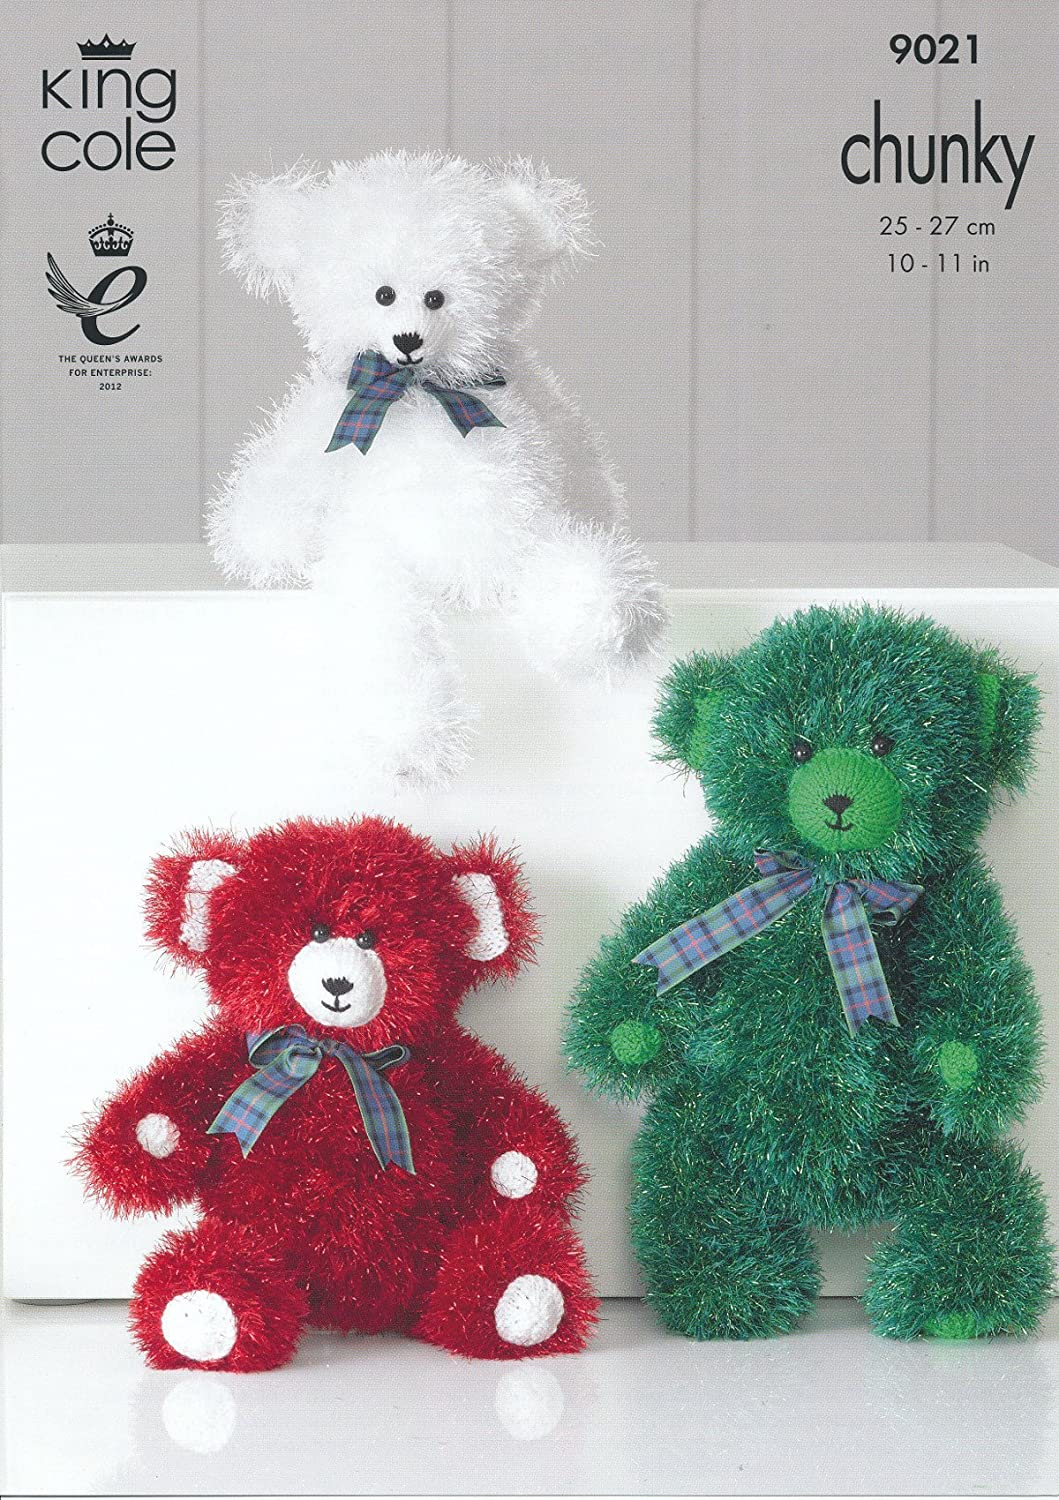 King Cole Knitting Leaflet Tinsel Chunky Teddy Bears 9021: Amazon.co ...